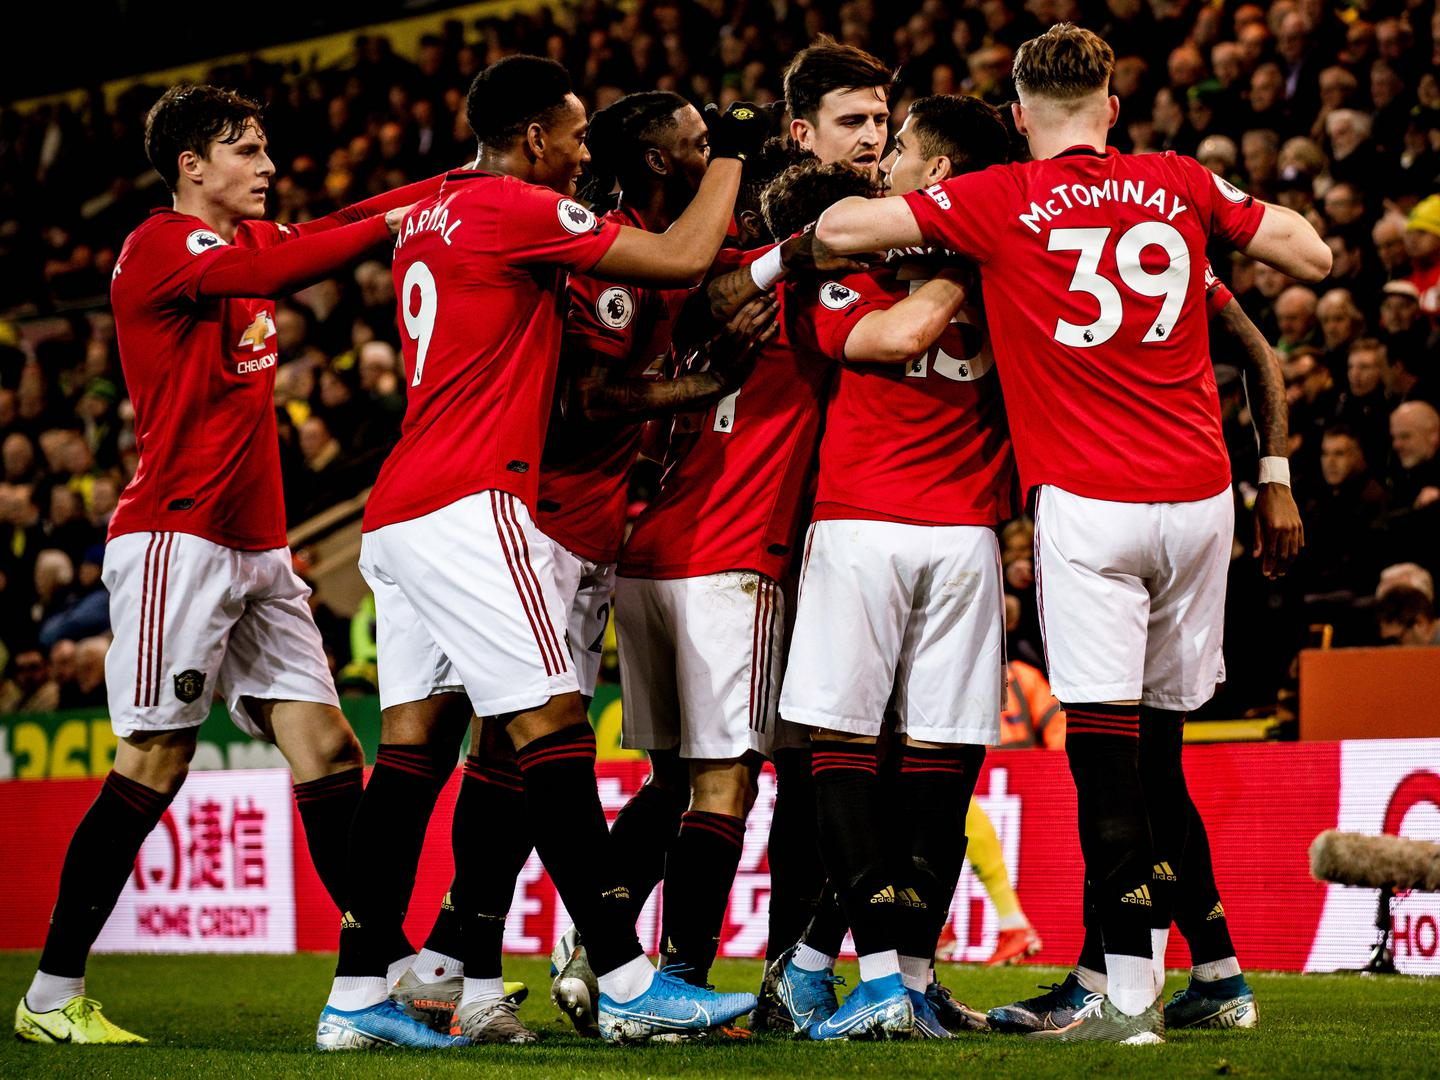 Manchester United players celebrate a goal against Norwich City,